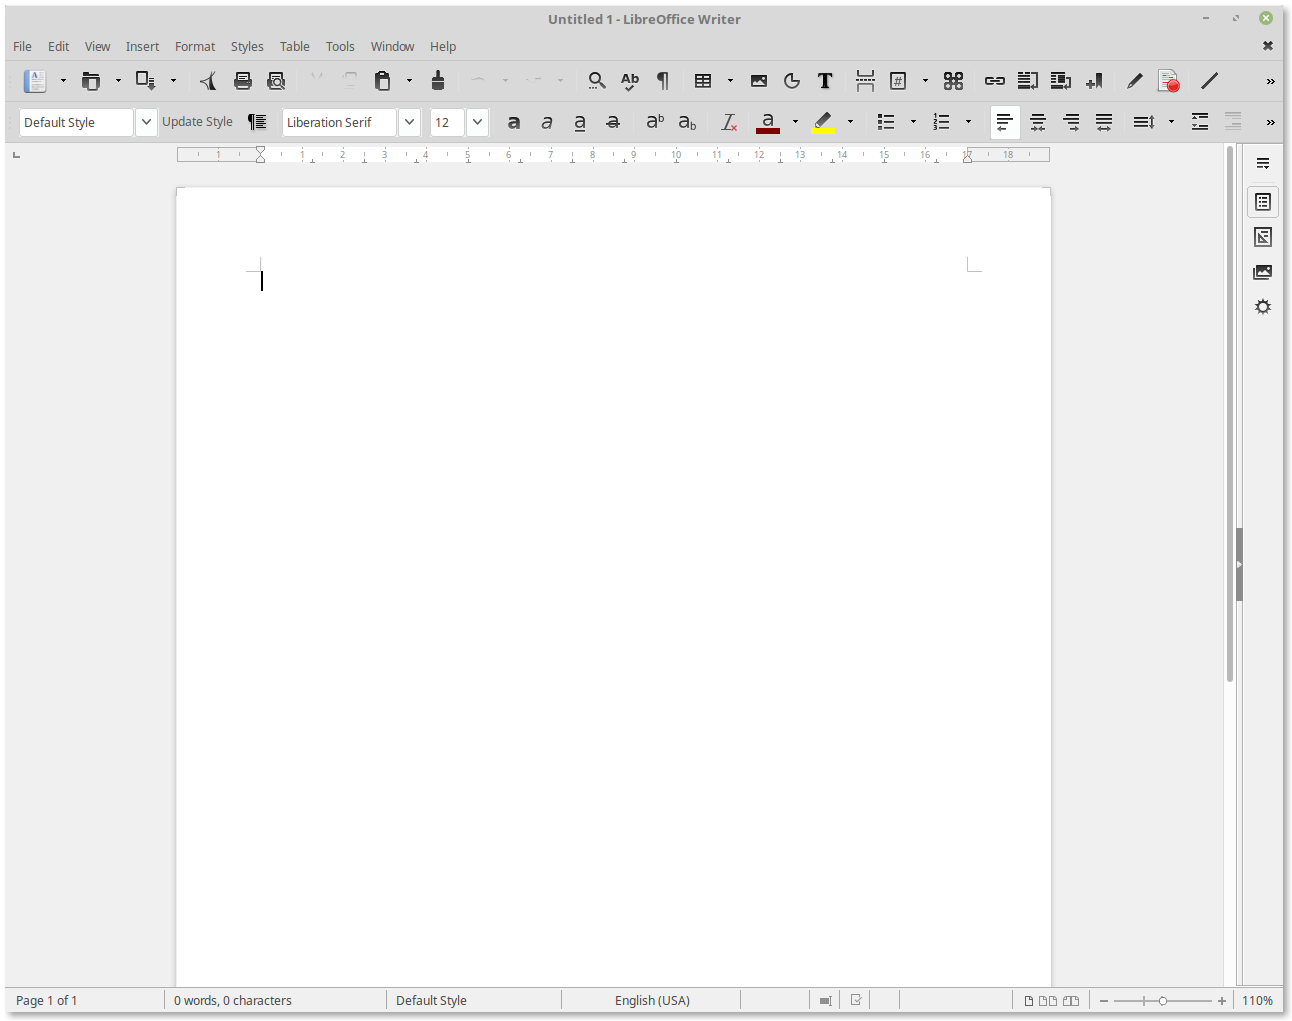 libre office 5.1.6.2